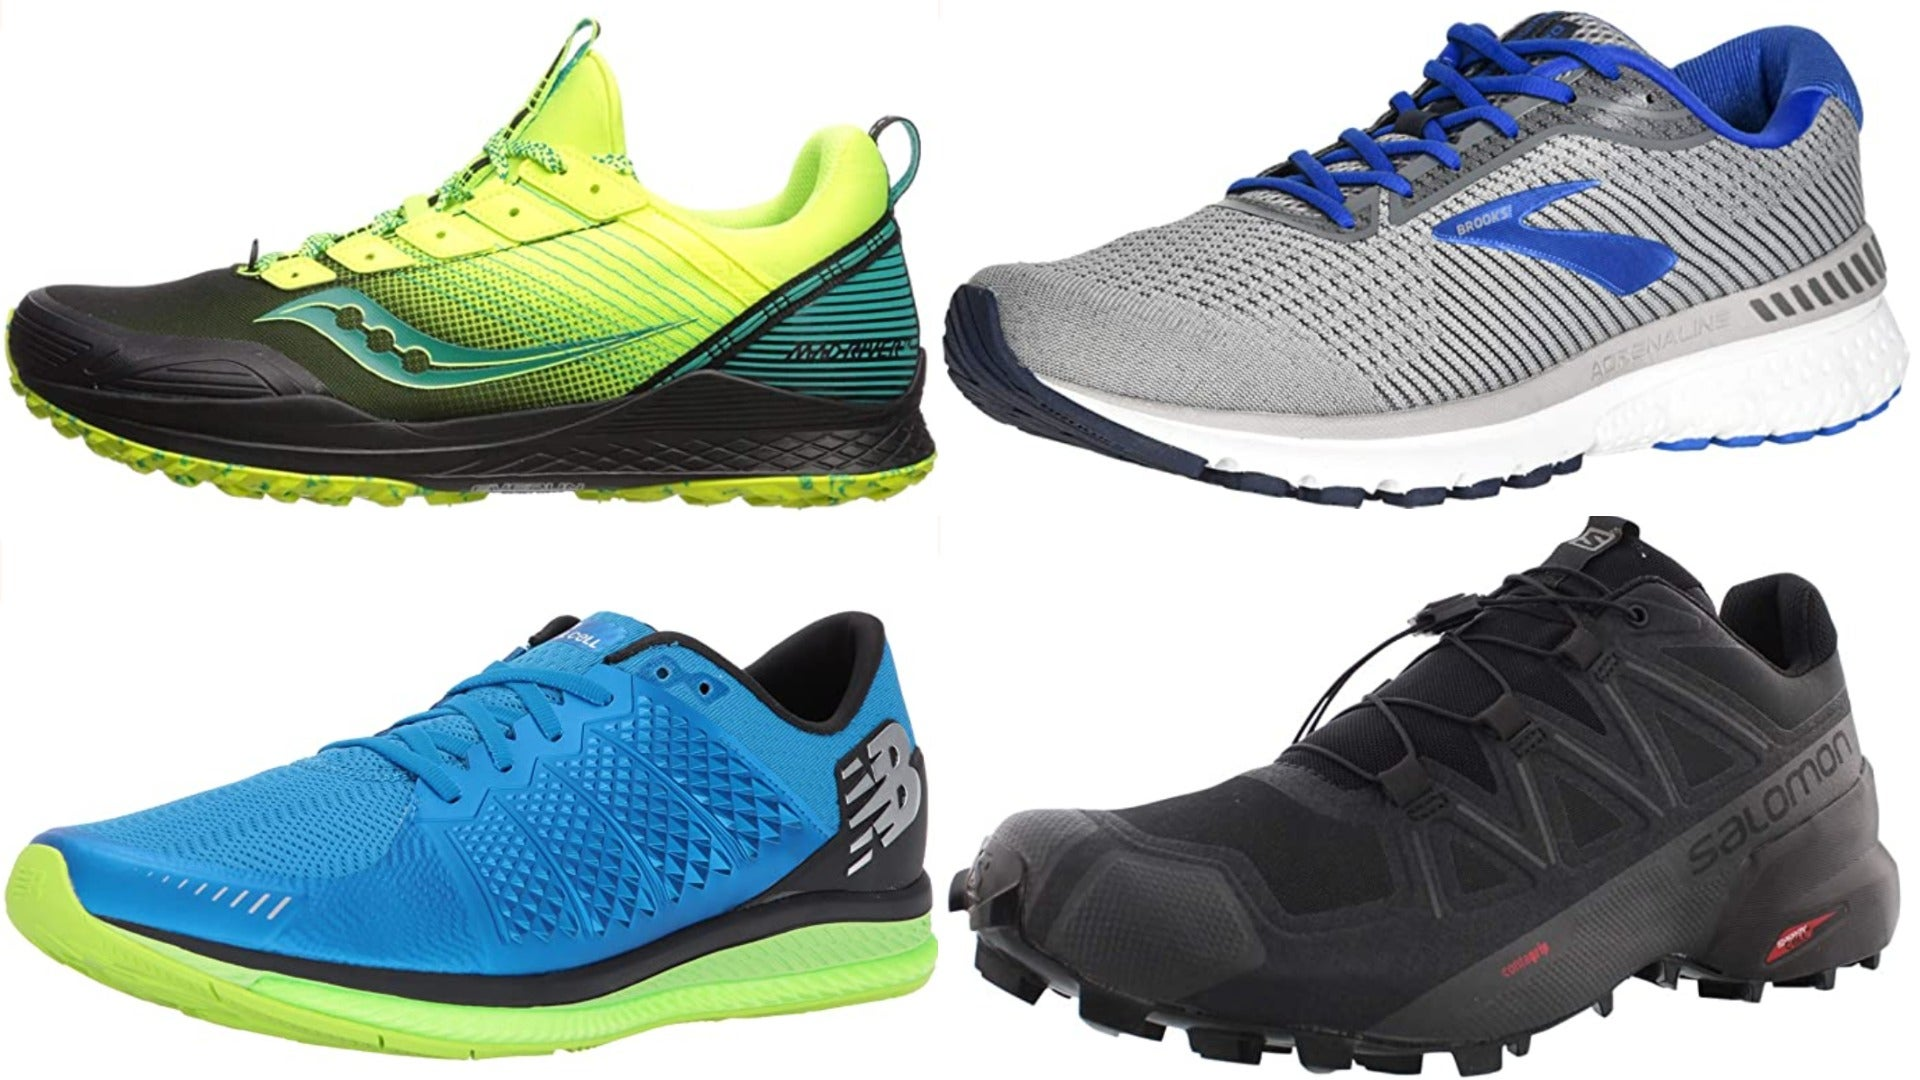 7 running shoes that can turn you into a PT stud